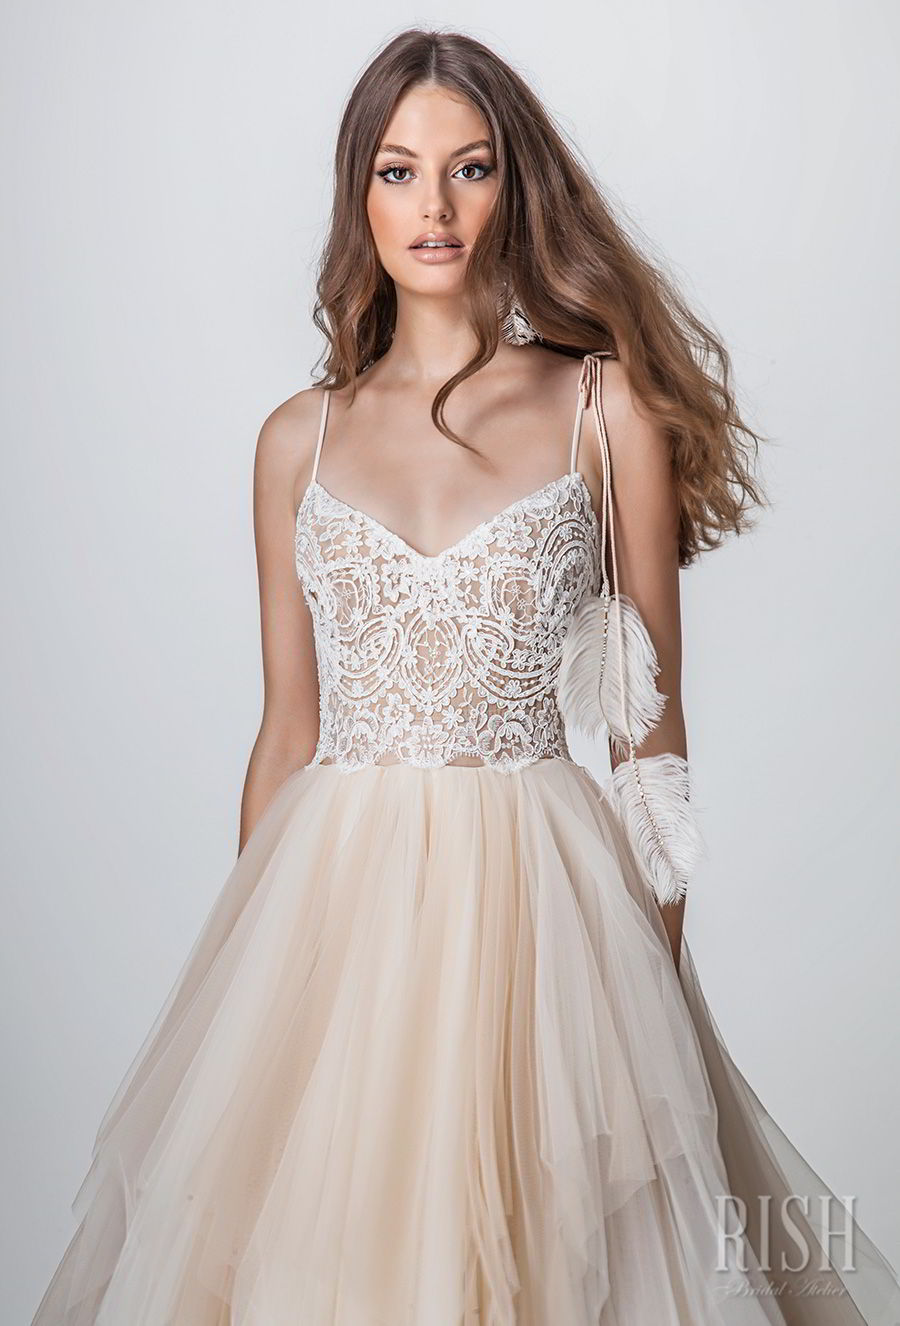 rish bridal sun dance 2018 sleeveless spaghetti strap diamond neck heavily embellished bodice bodice layered skirt romantic ivory a  line wedding dress v back sweep train (scarlette) zv